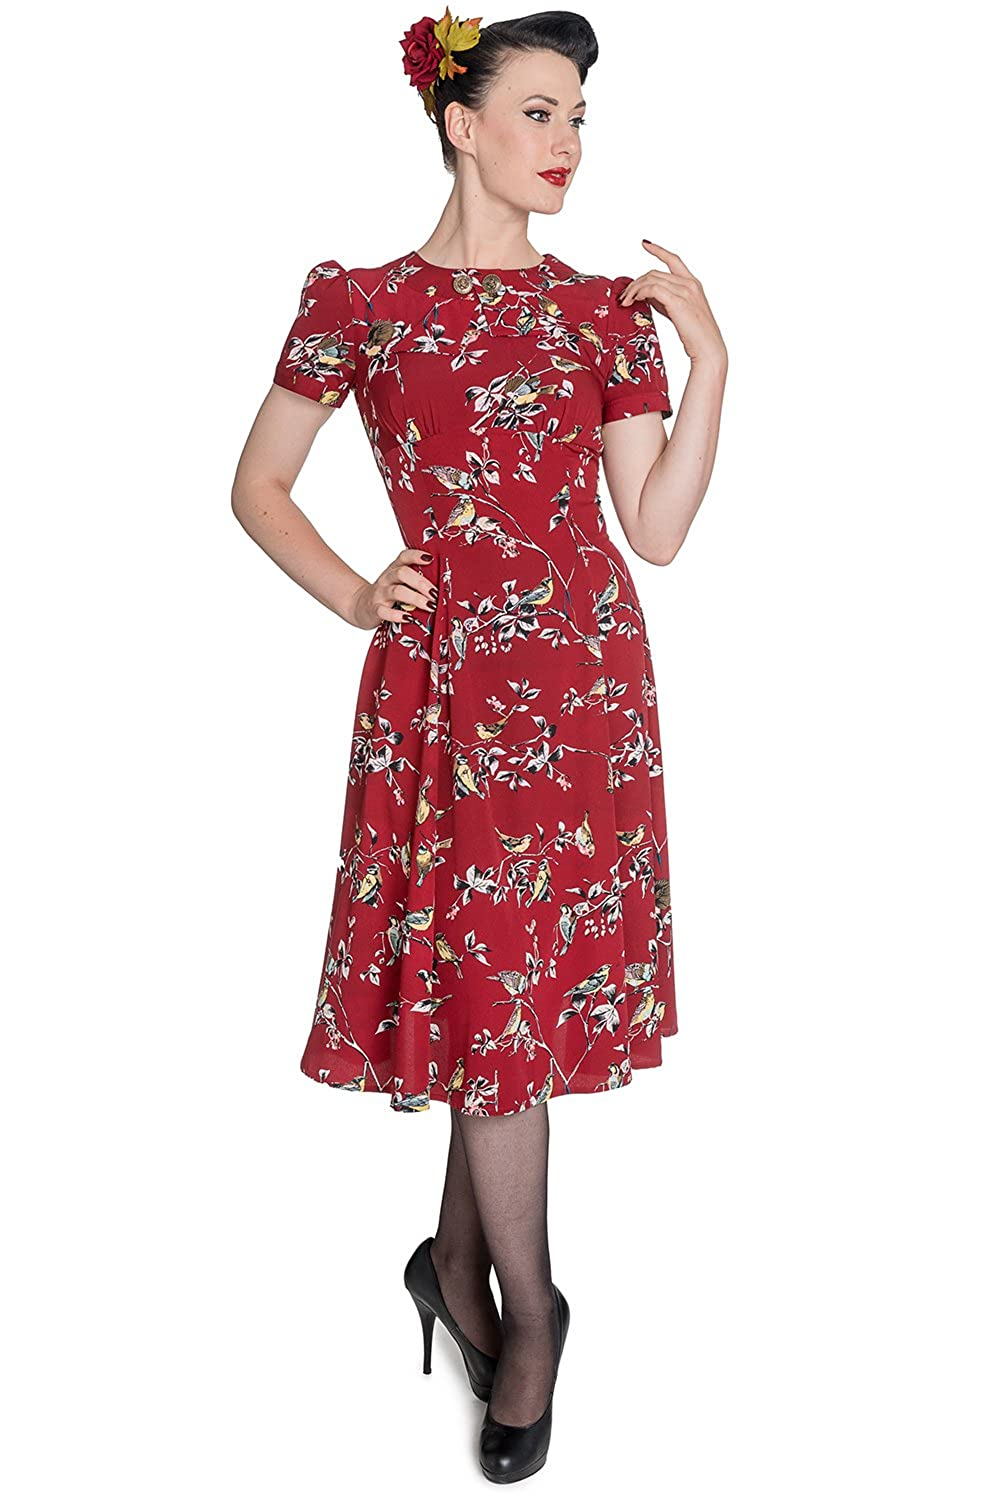 1940s Fashion Advice for Short Women Hell Bunny New Birdy Vintage Landgirl 40s Dress $39.99 AT vintagedancer.com